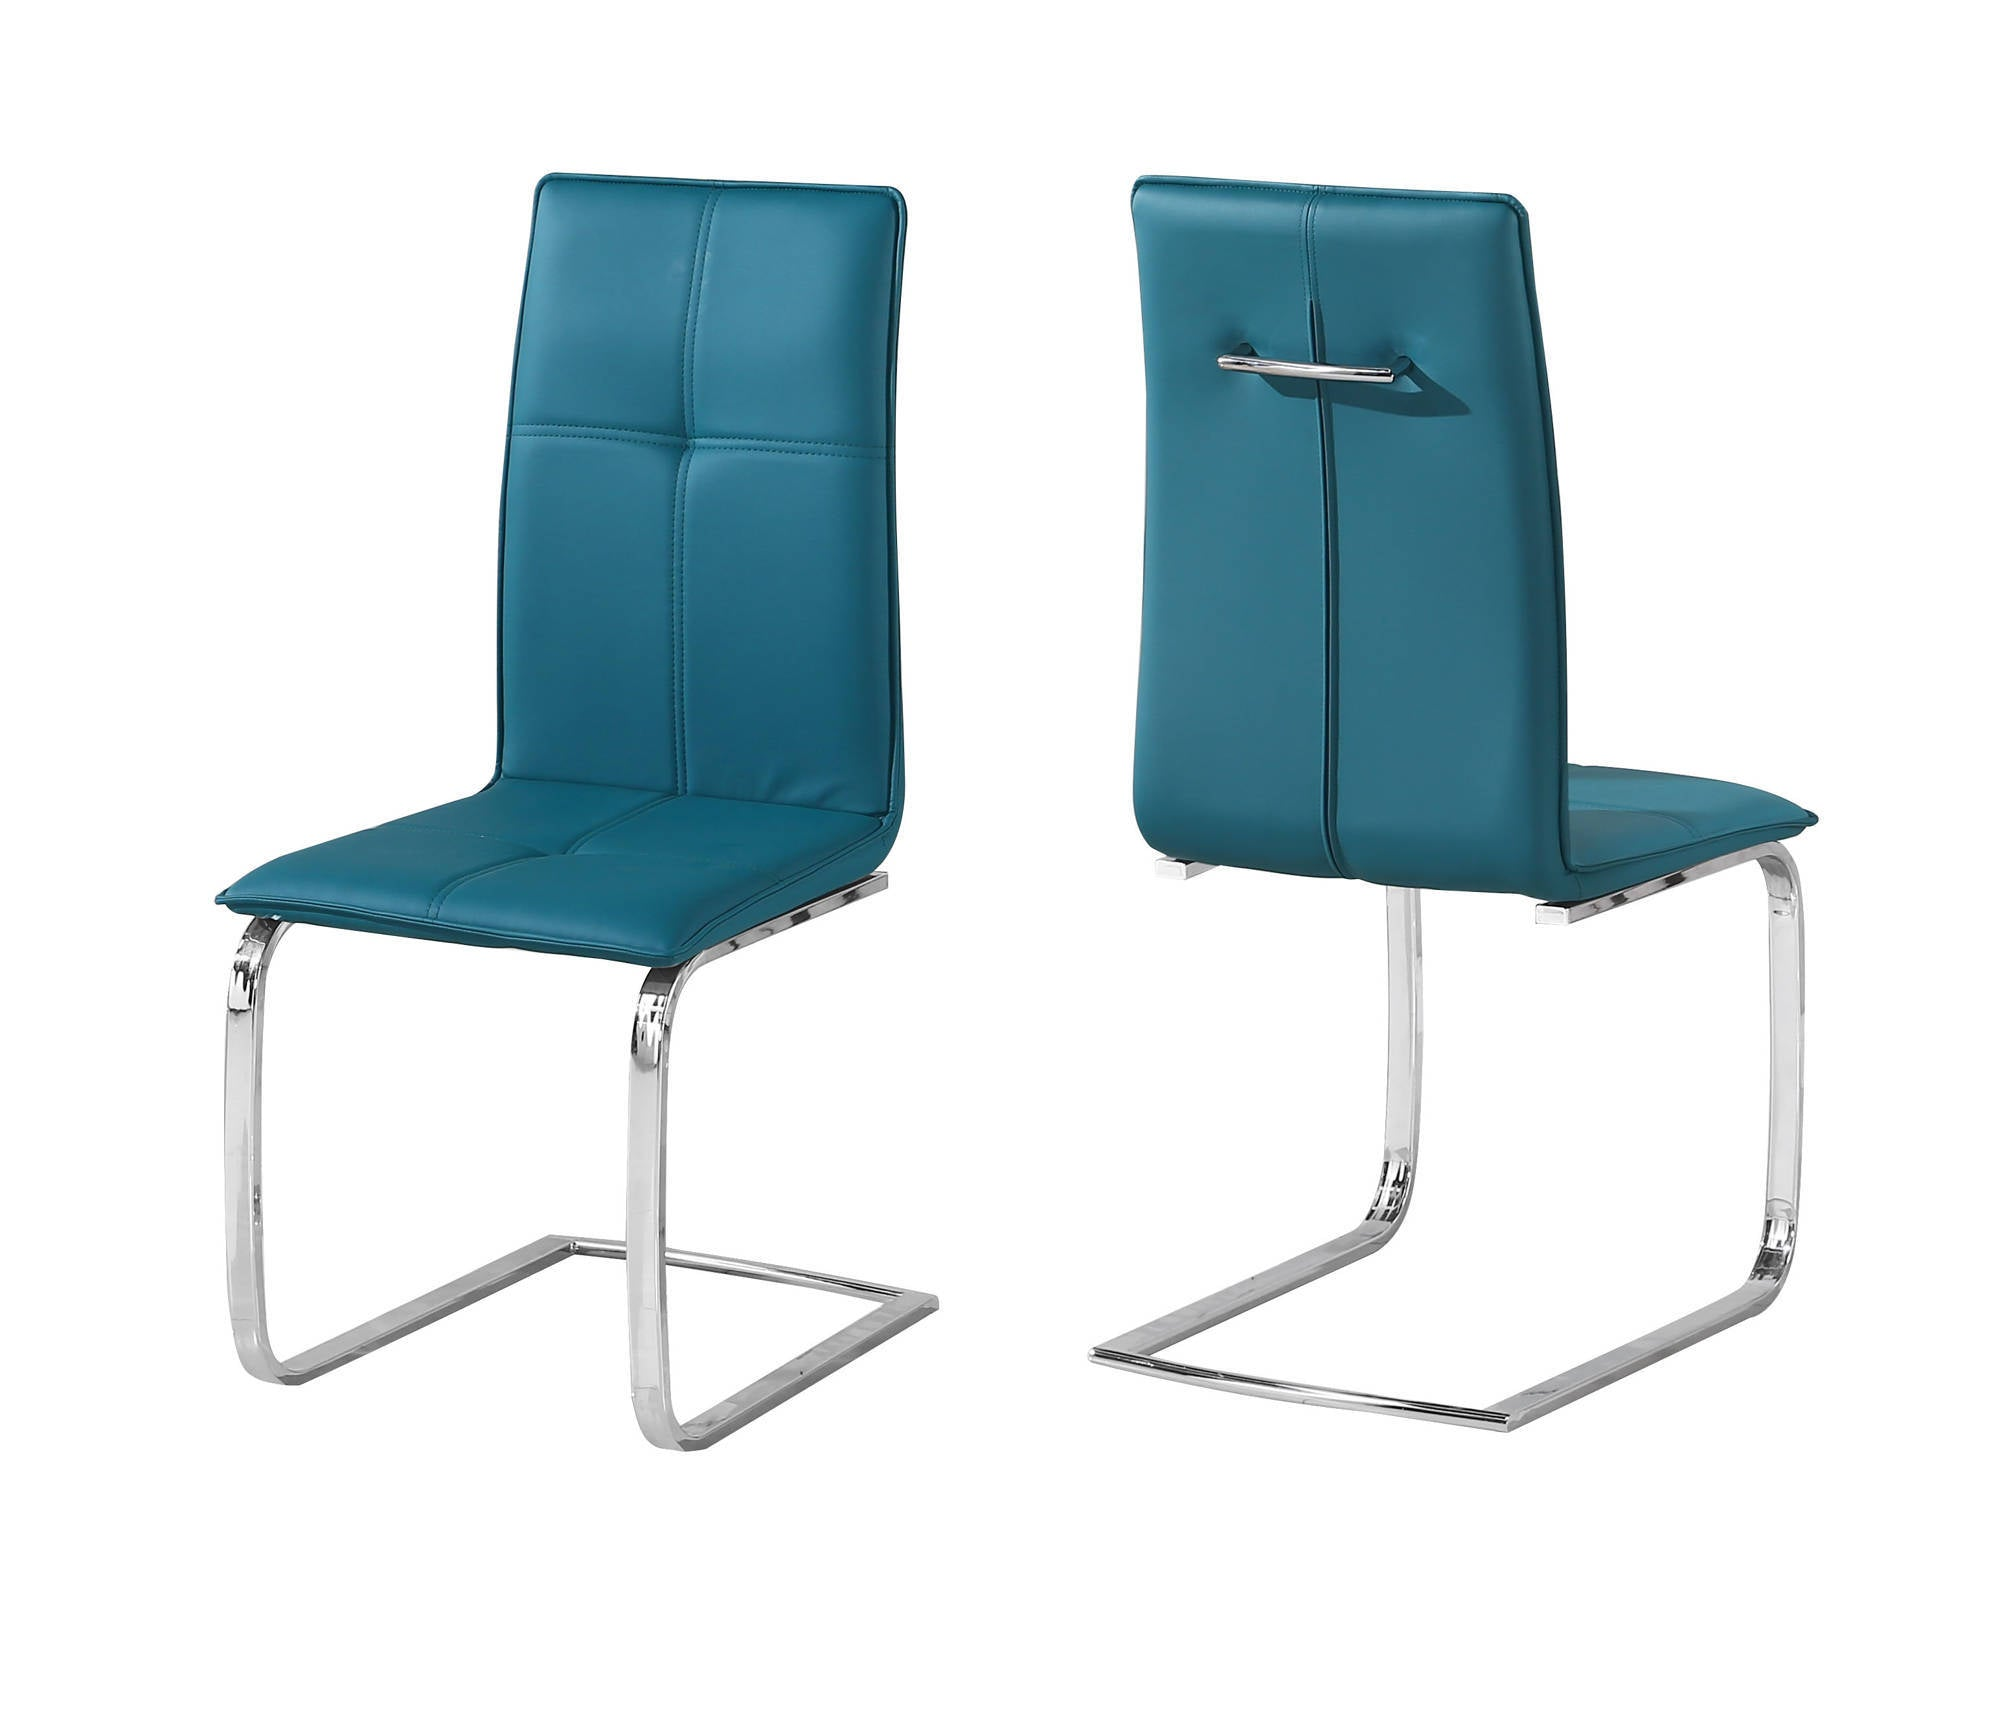 Oeuvre Dining Chairs in Teal - Ezzo